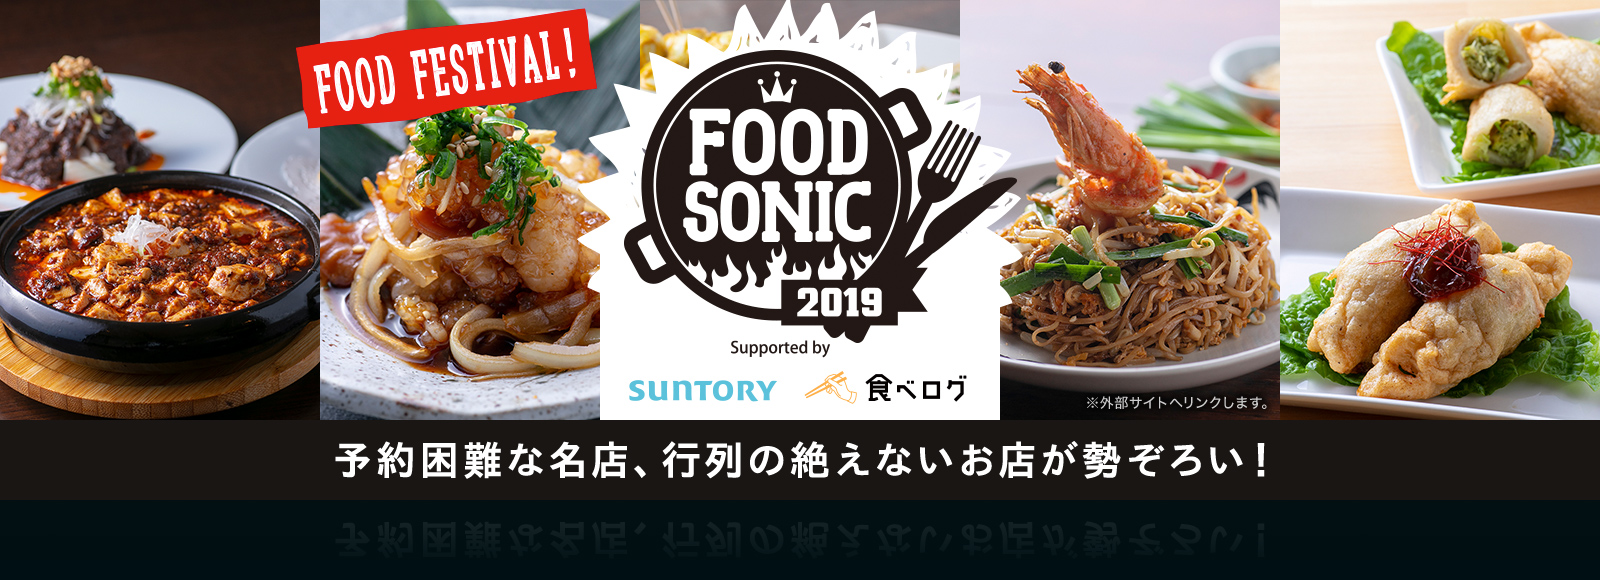 FOOD SONIC 2019 Supported by SUNTORY 食べログ 予約困難な名店、行列の絶えないお店が勢ぞろい!